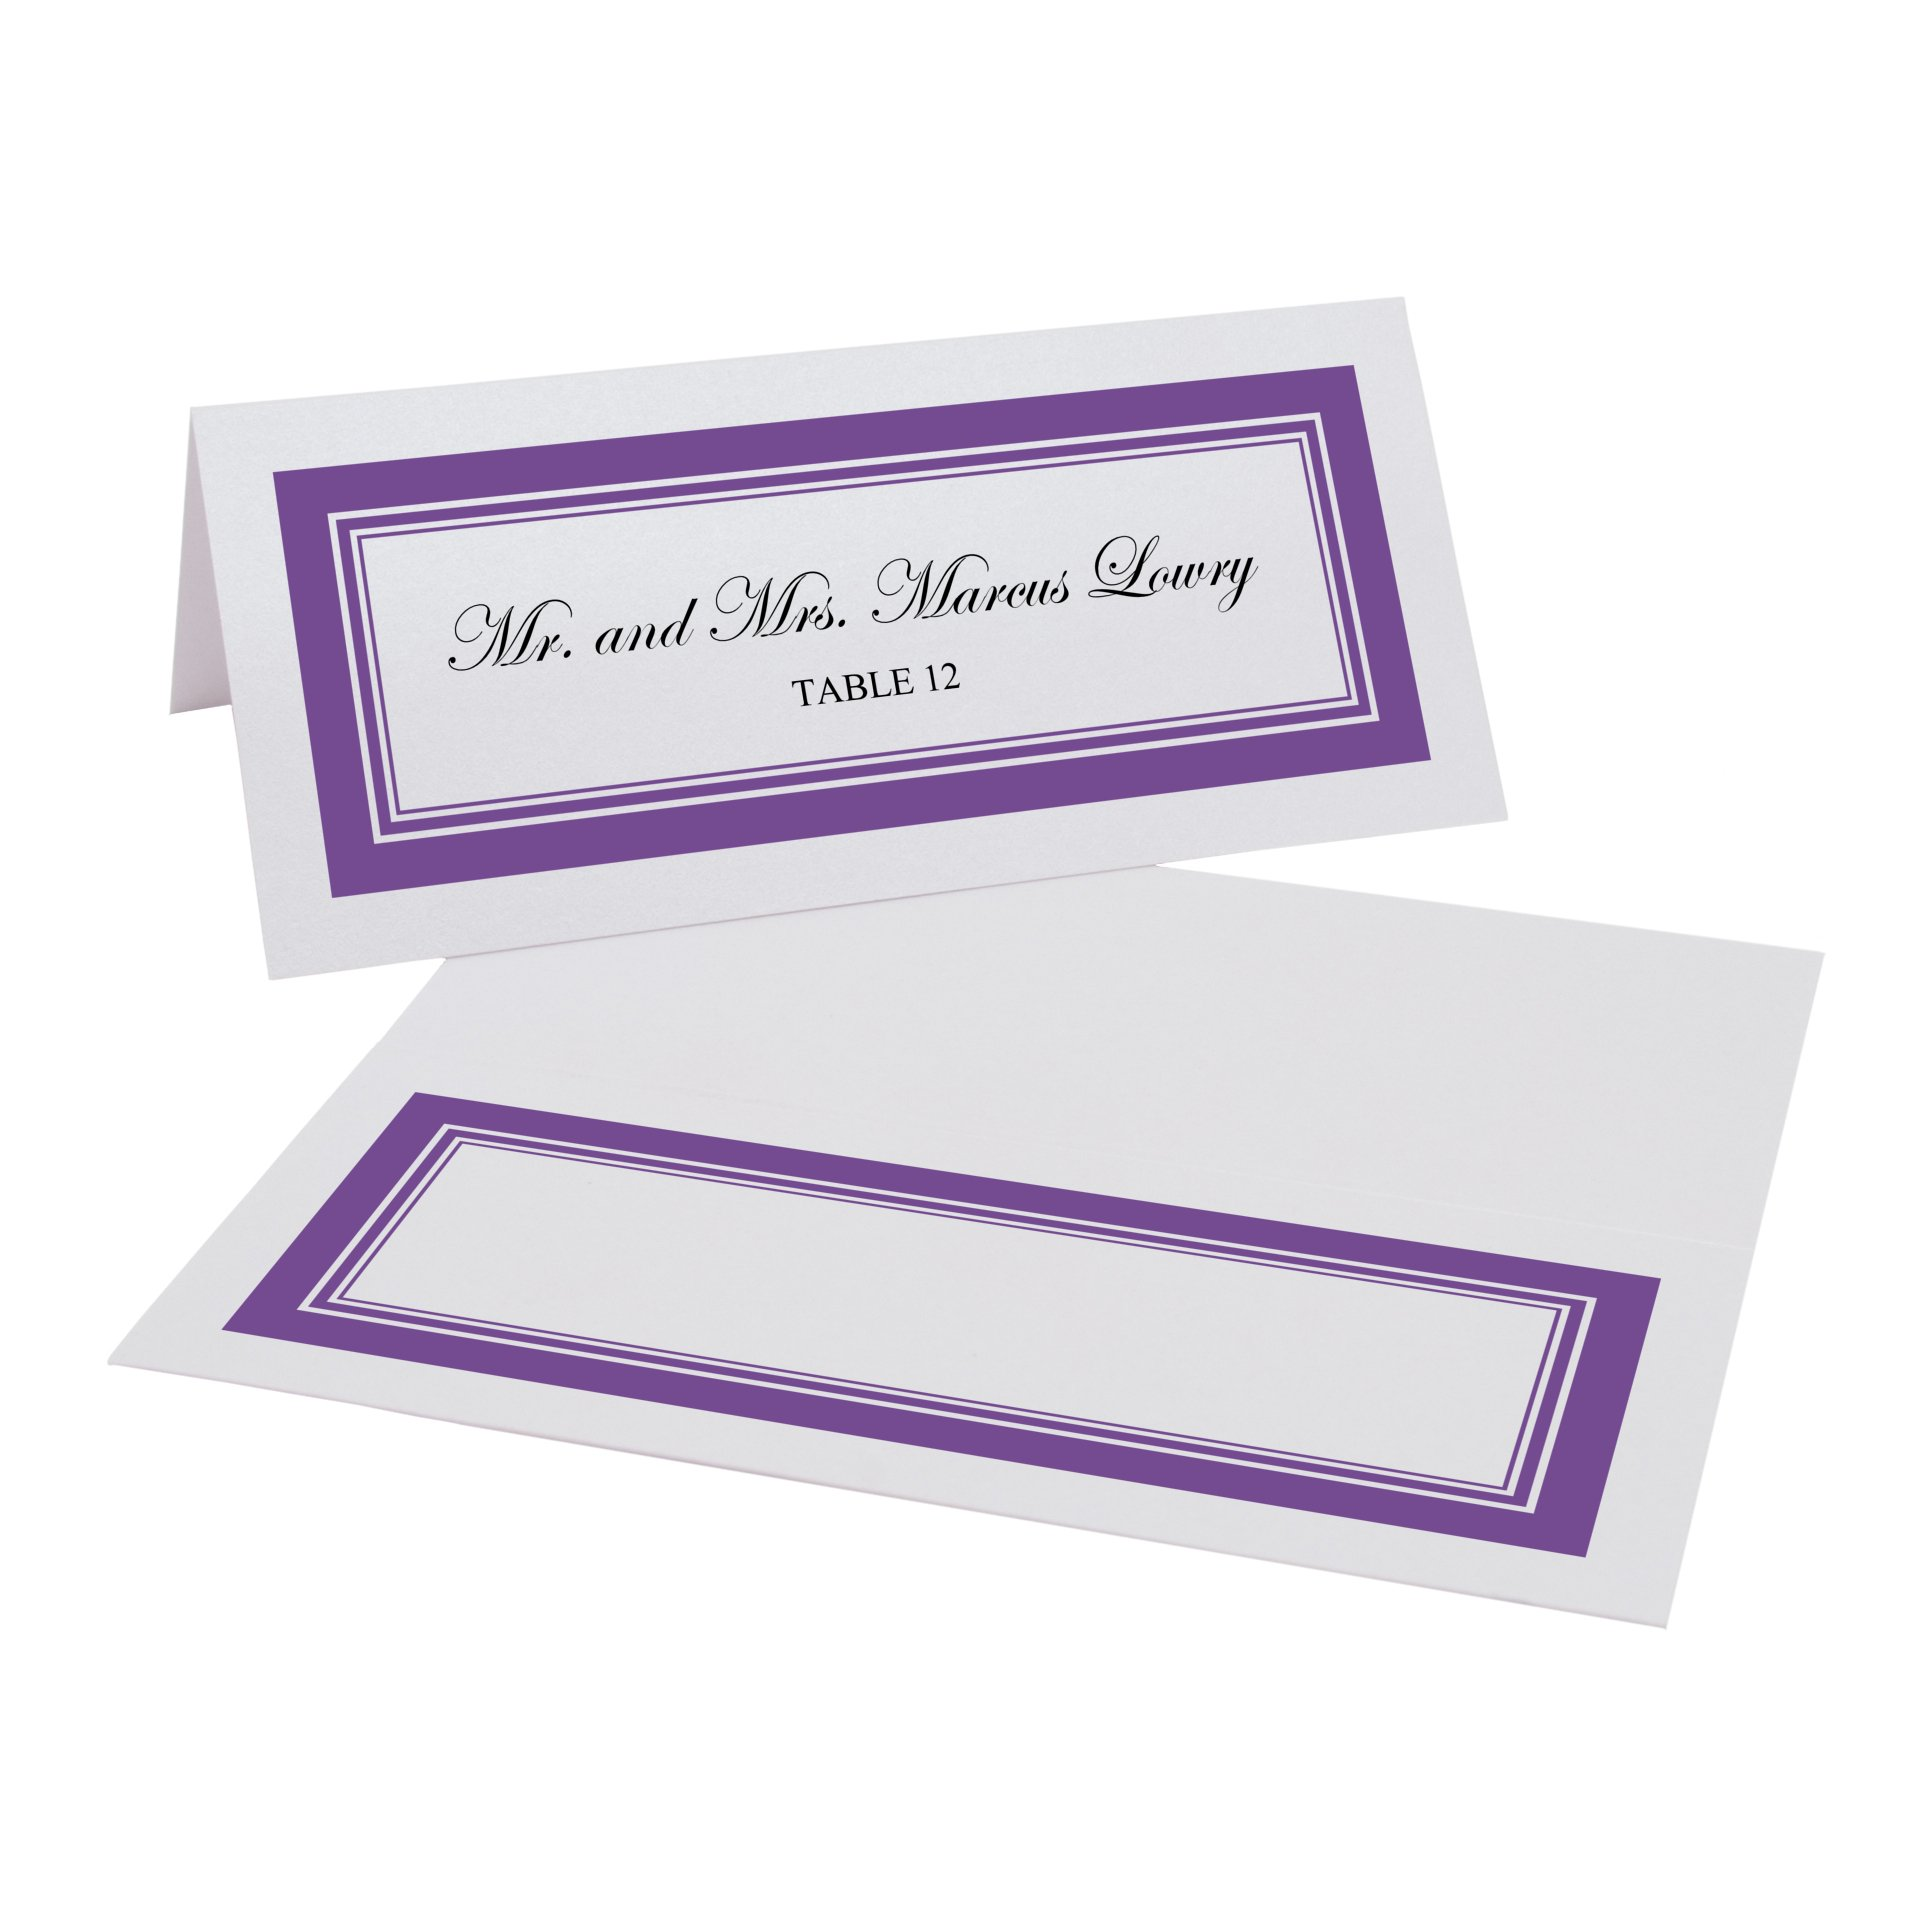 Triple Line Border Easy Print Place Cards, Pearl White, Purple, Set of 300 (75 Sheets) by Documents and Designs